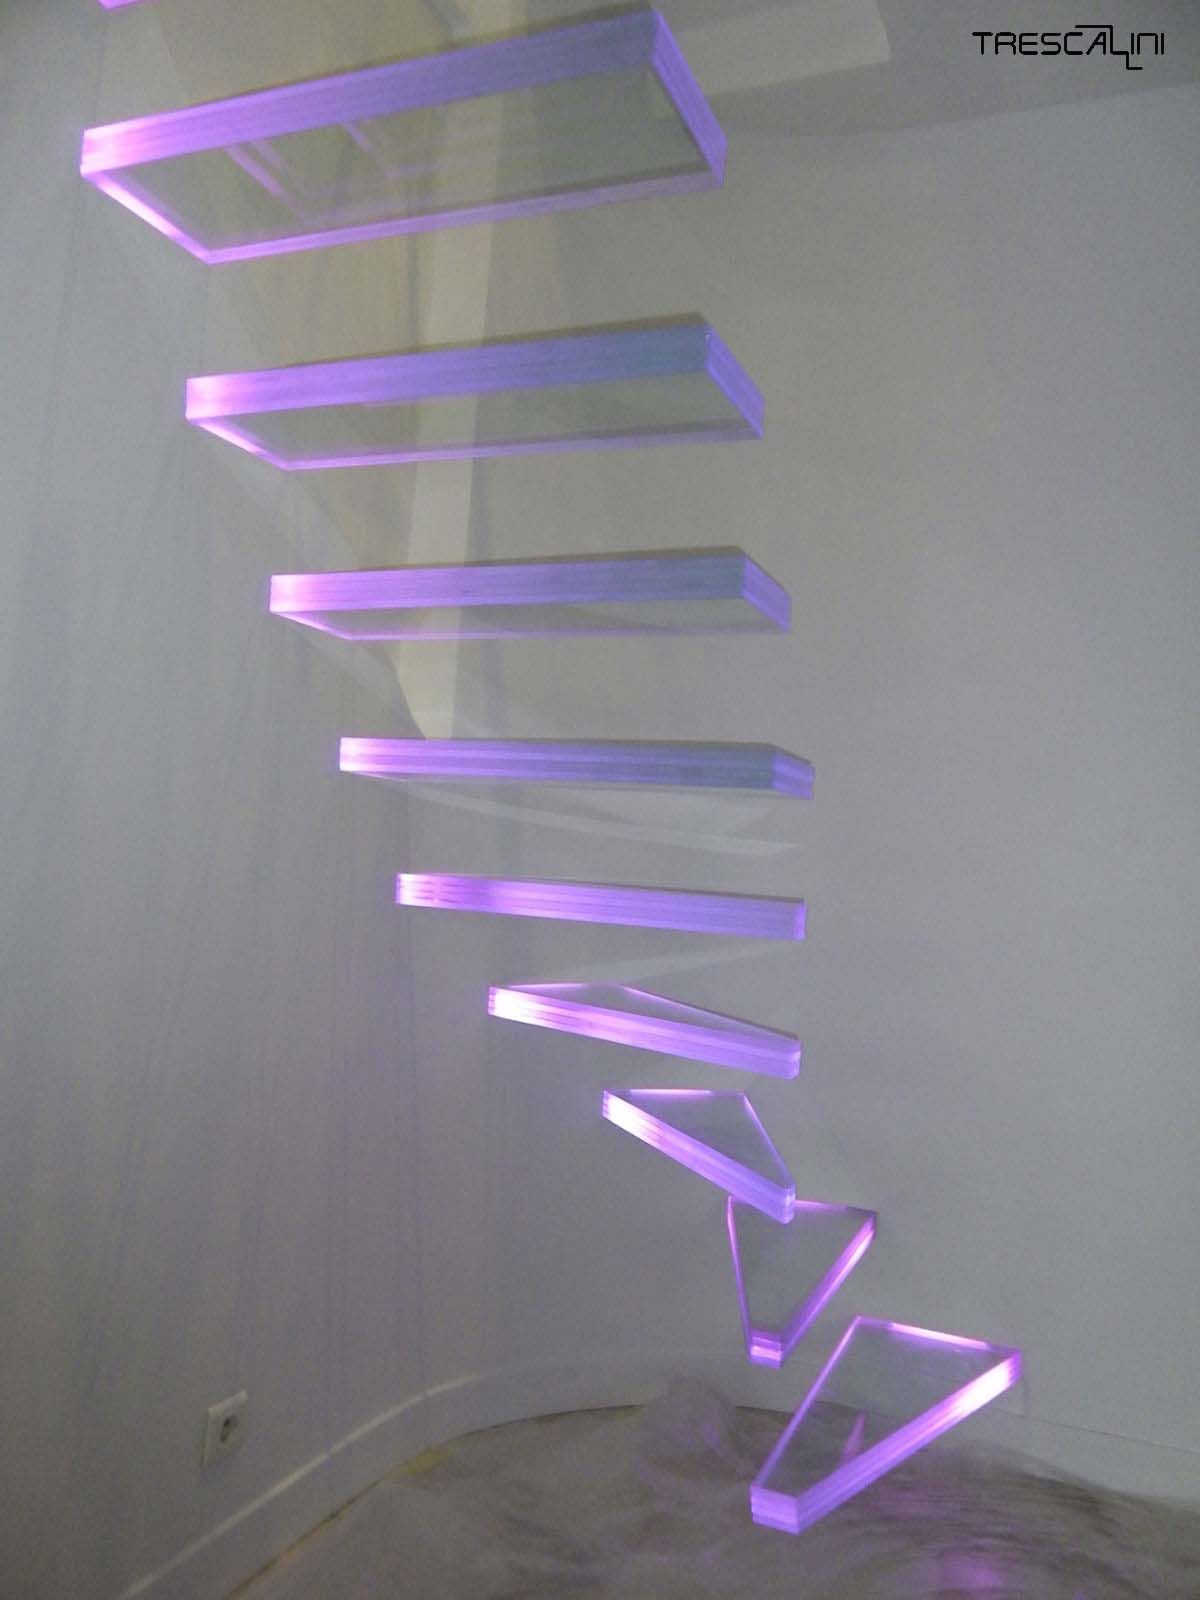 Trescalini  Aero Glass Staircase With Led Light System (Lighting